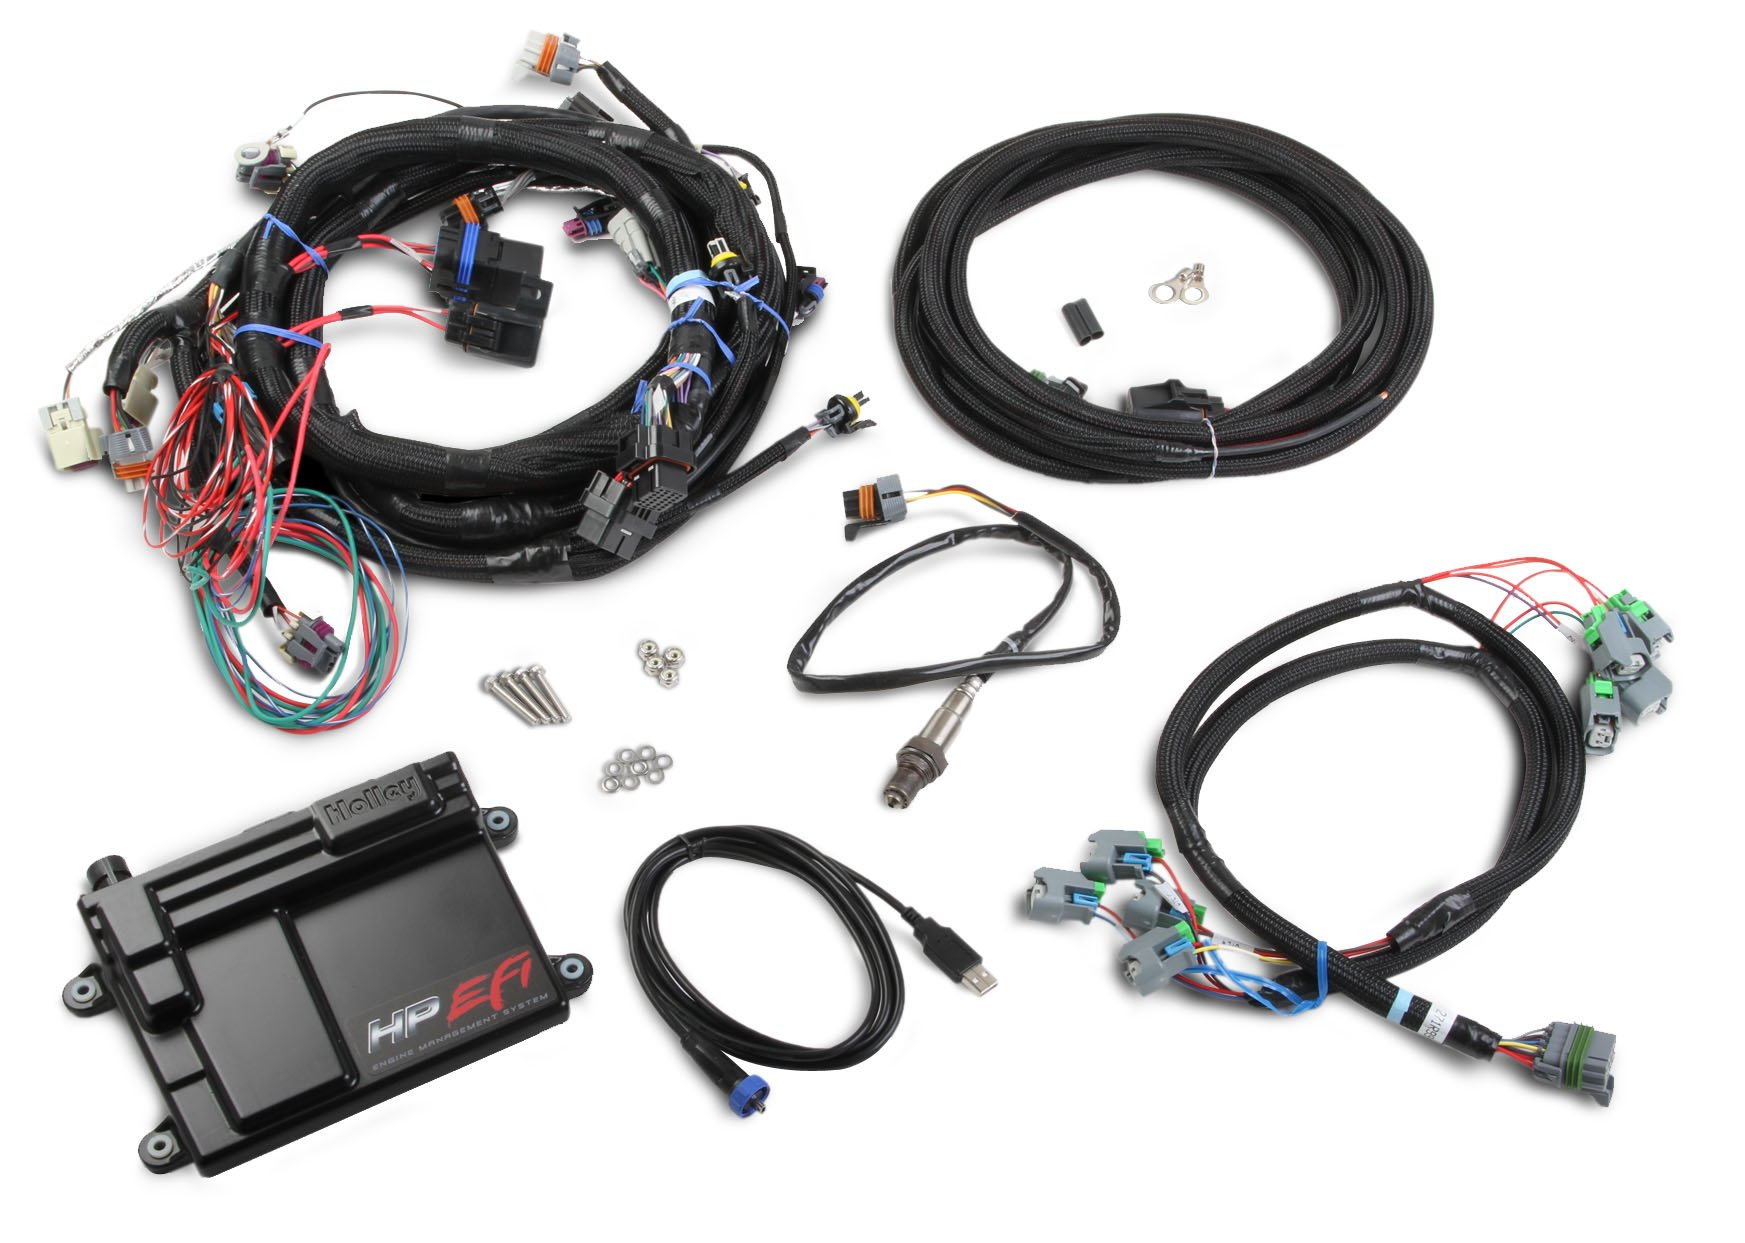 550 603 holley efi 550 603 hp efi ecu & harness kits ls wiring harness and computer at alyssarenee.co